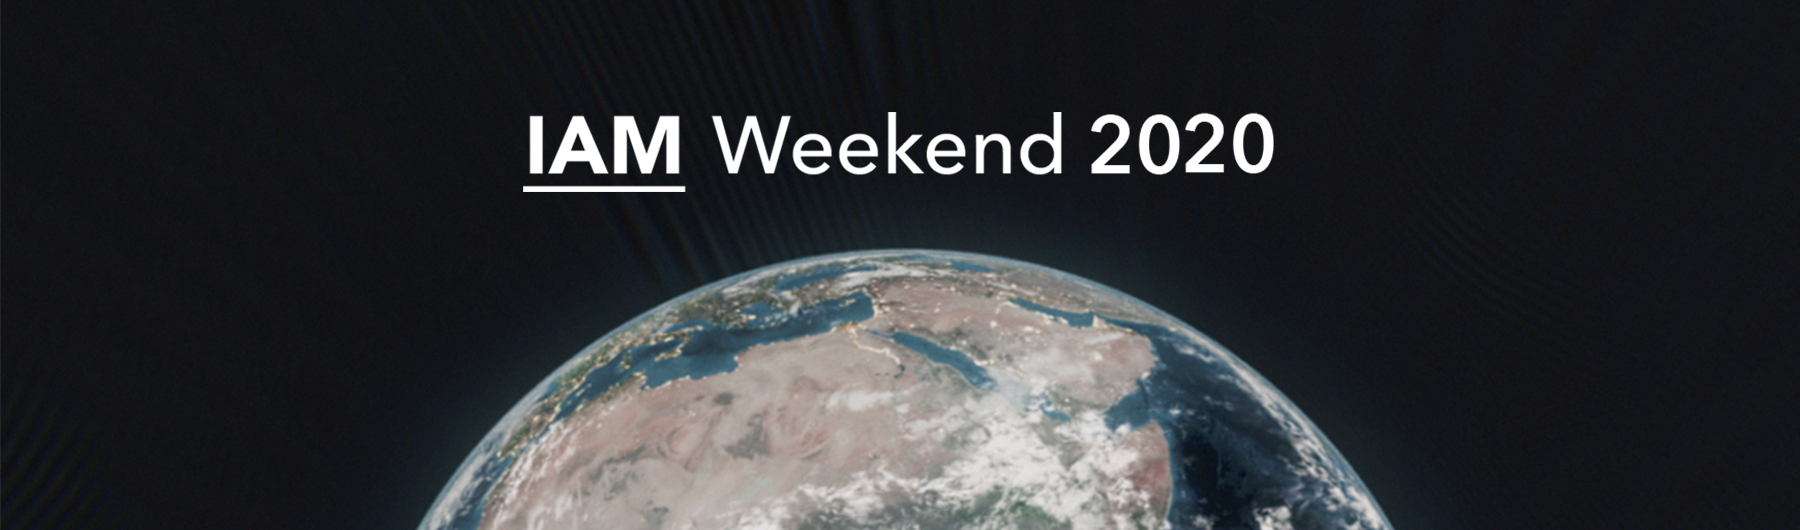 IAM Weekend 2020